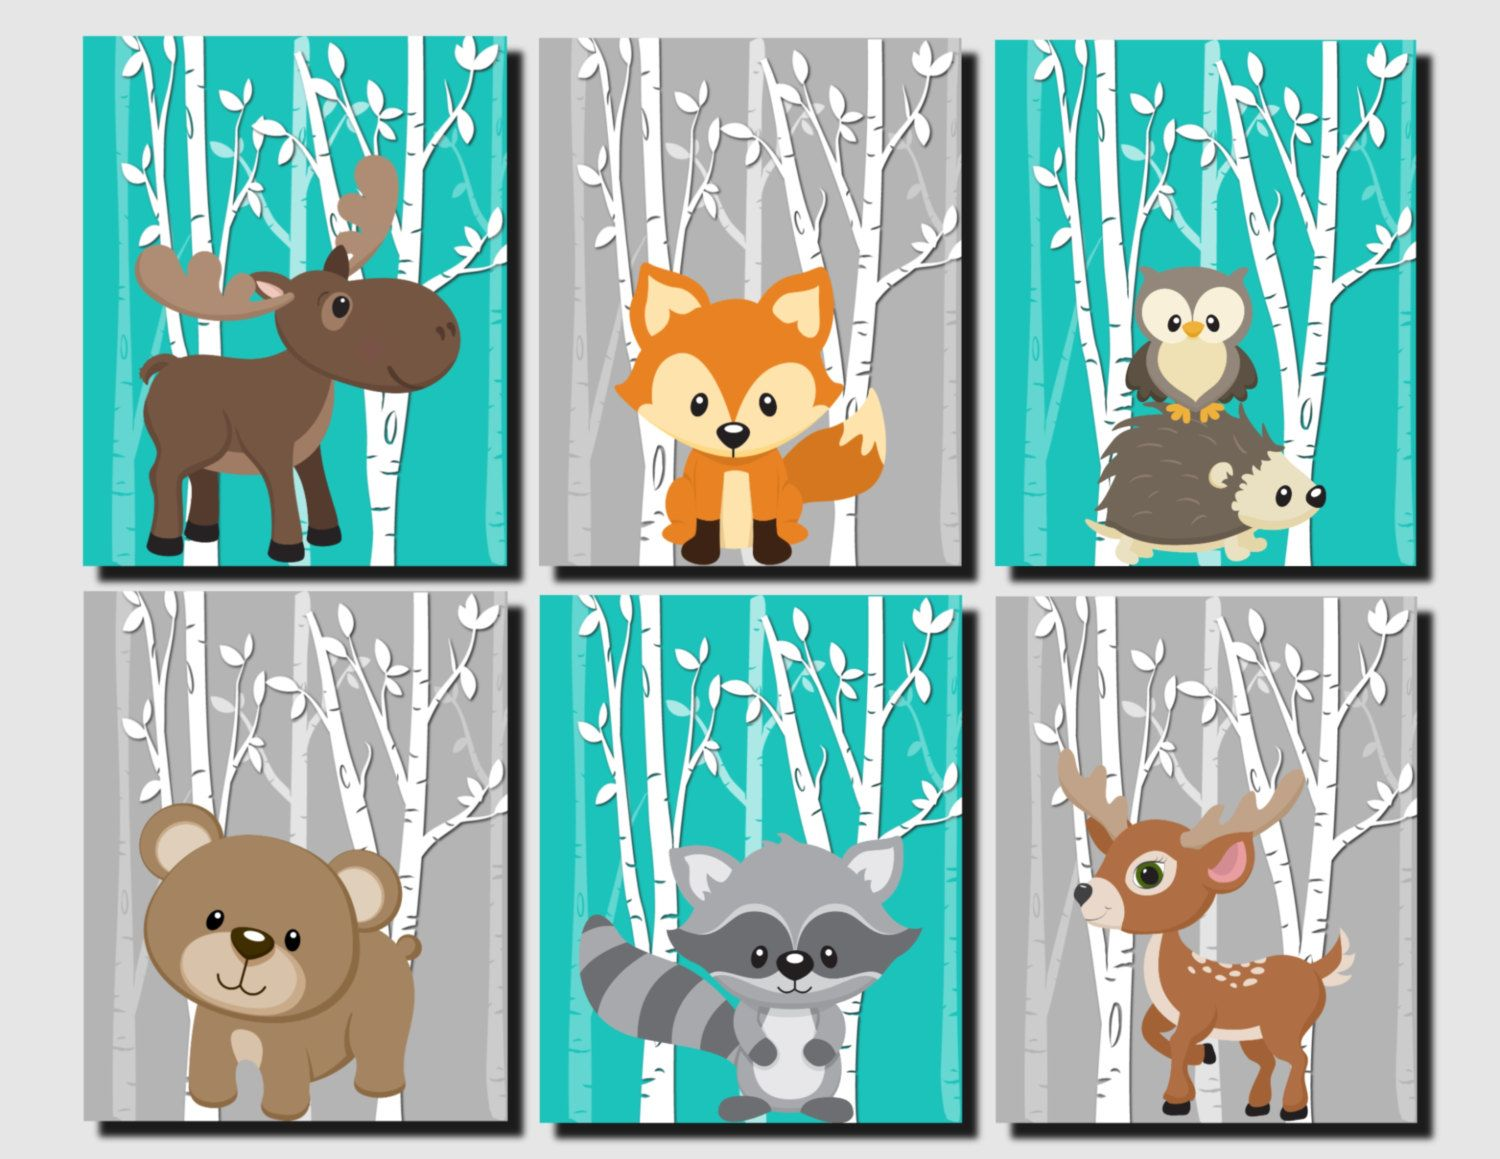 Bathroom wall art for kids - Wall Art Designs Kids Wall Art Woodland Nursery Woodland Wall Decor Kids Teal Gray Forest Animals Wall Art Awesome Kids Wall Art Kids Bathroom Wall Art